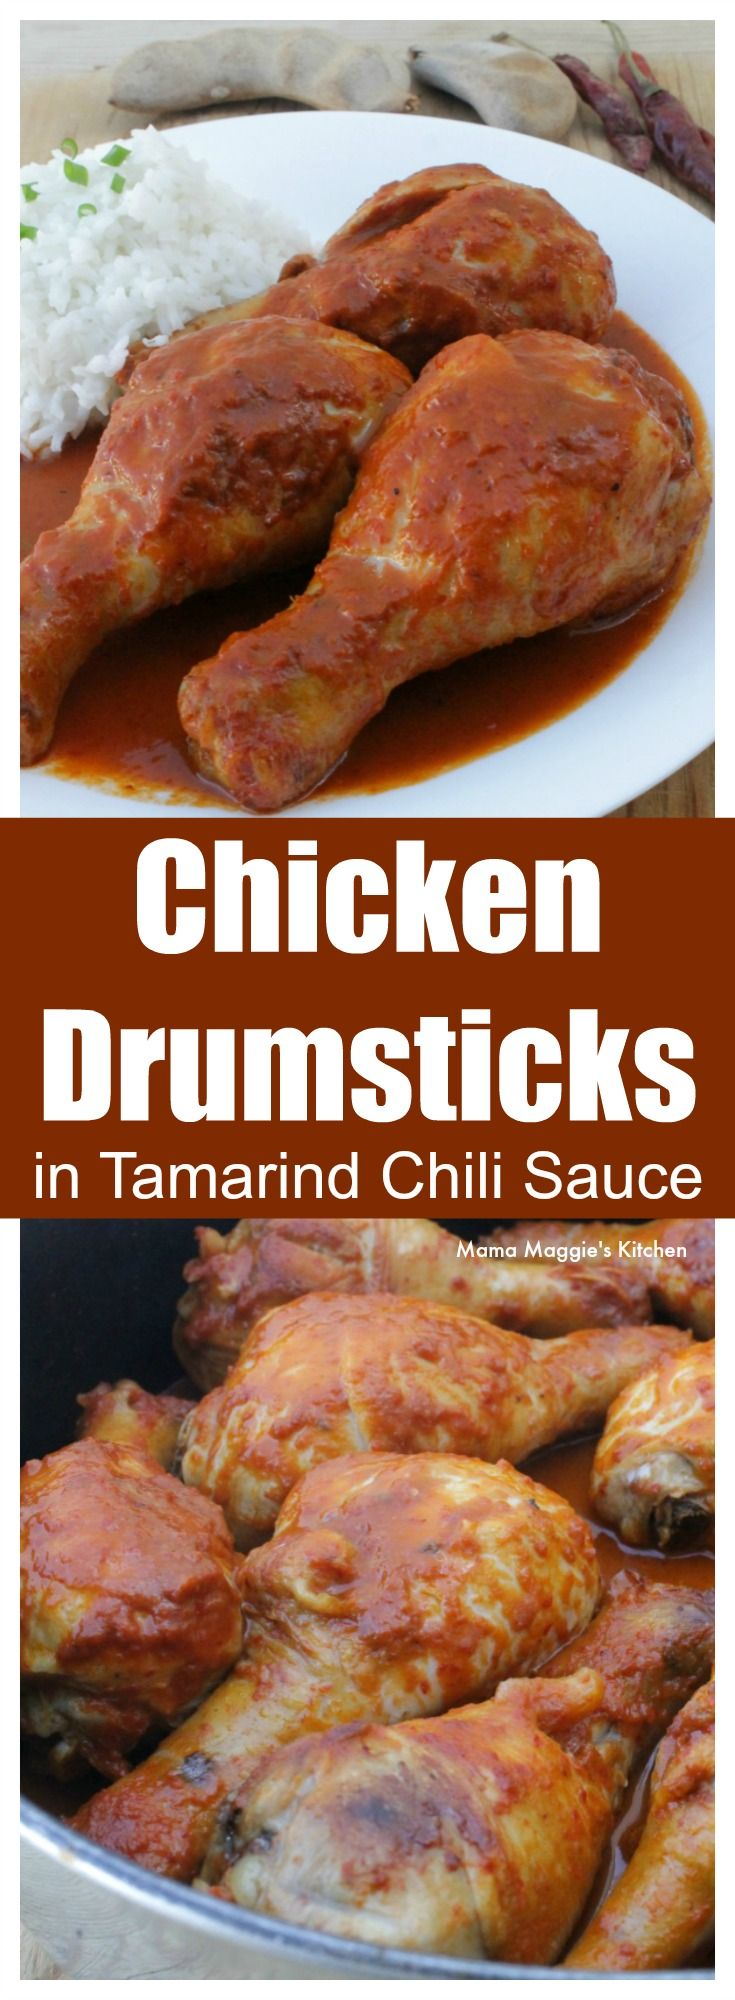 Chicken Drumsticks in Tamarind Chili Sauce is delicious and full of amazing flavors. Spicy and sweet and ready to eat